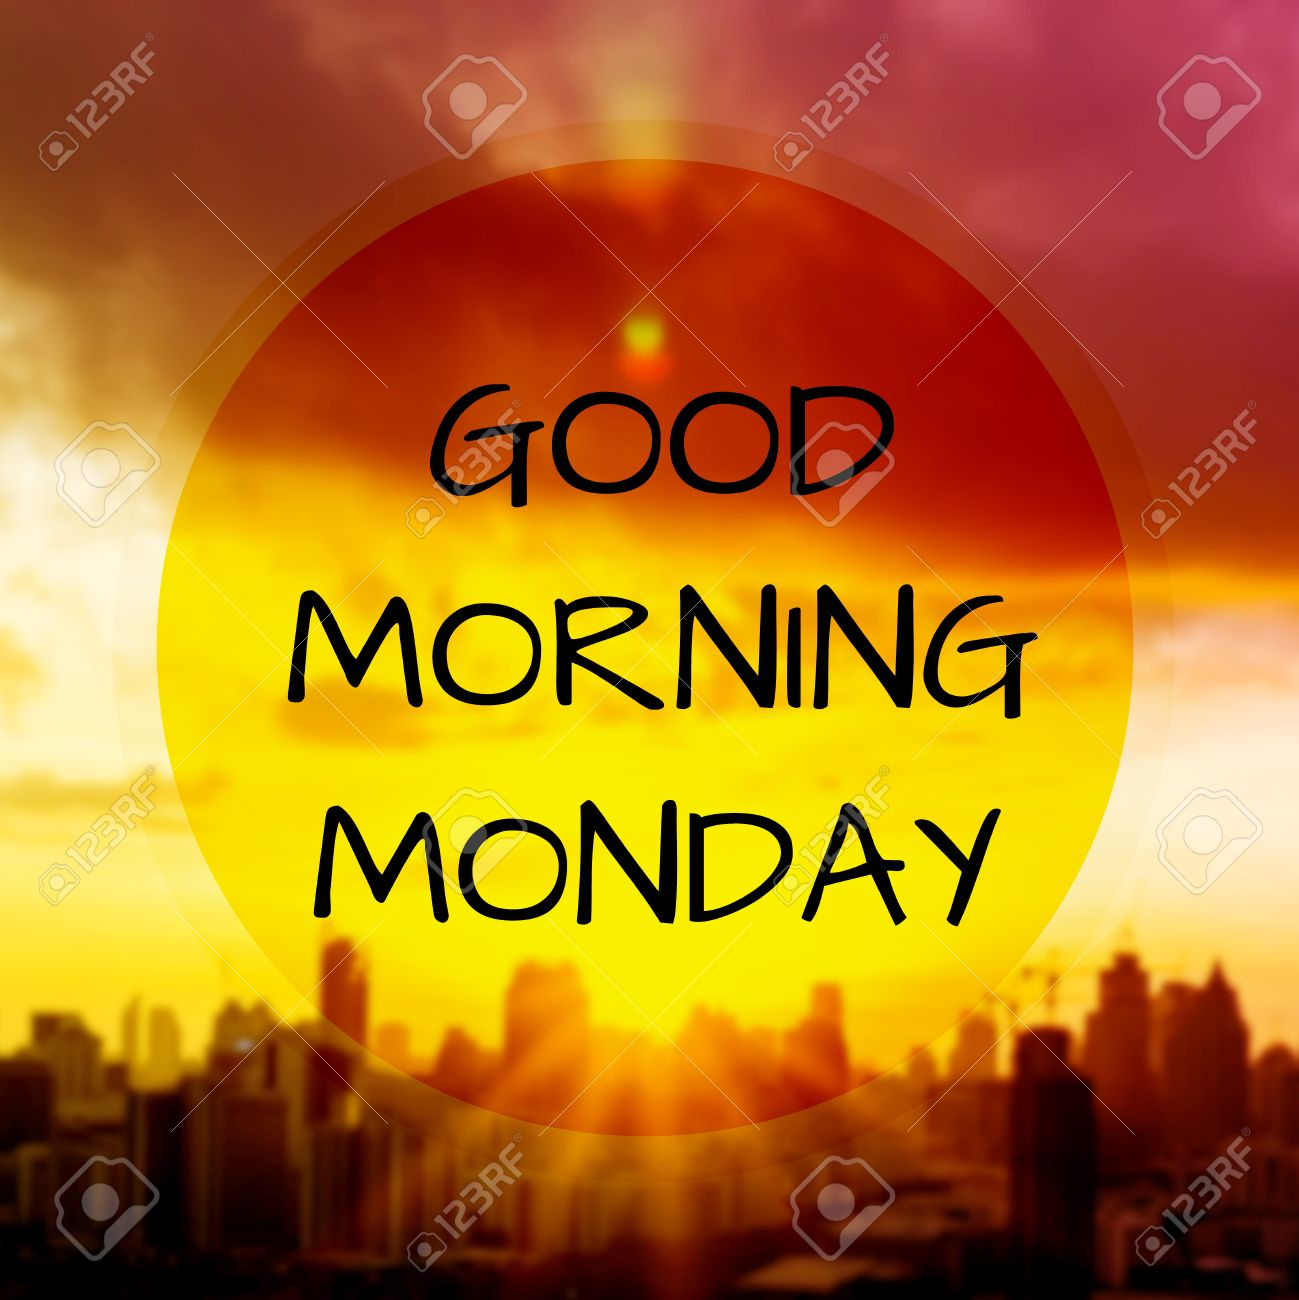 Good Morning Monday On Blur Background Stock Photo Picture And